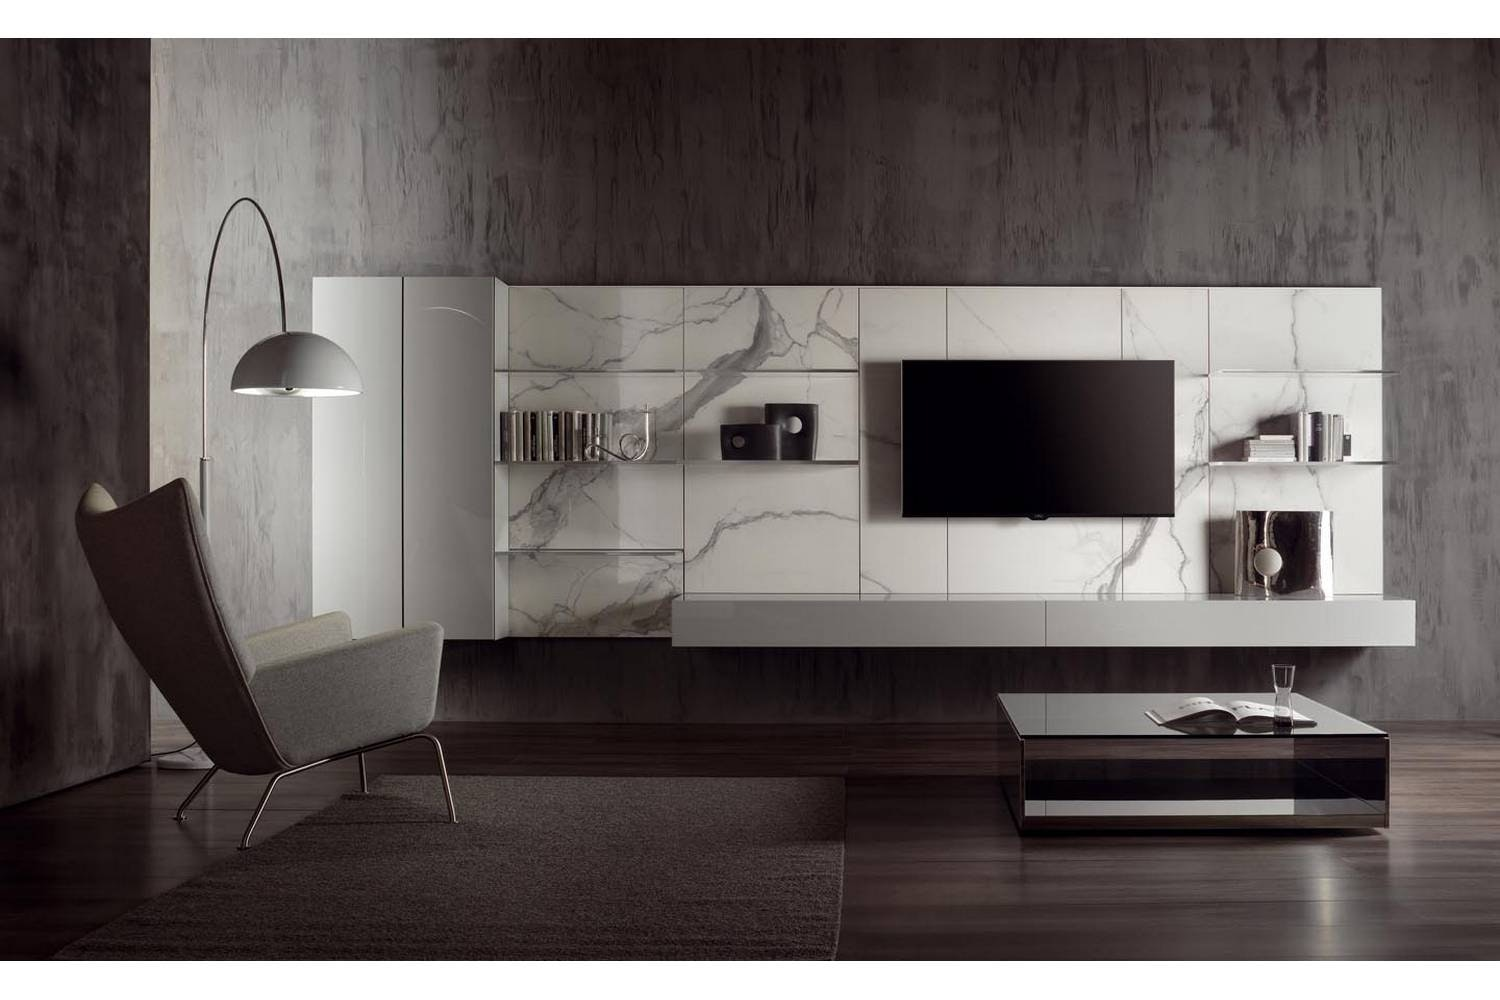 N.C. Landscape Wall Mounted Storage Unit by Massimo Castagna for Acerbis